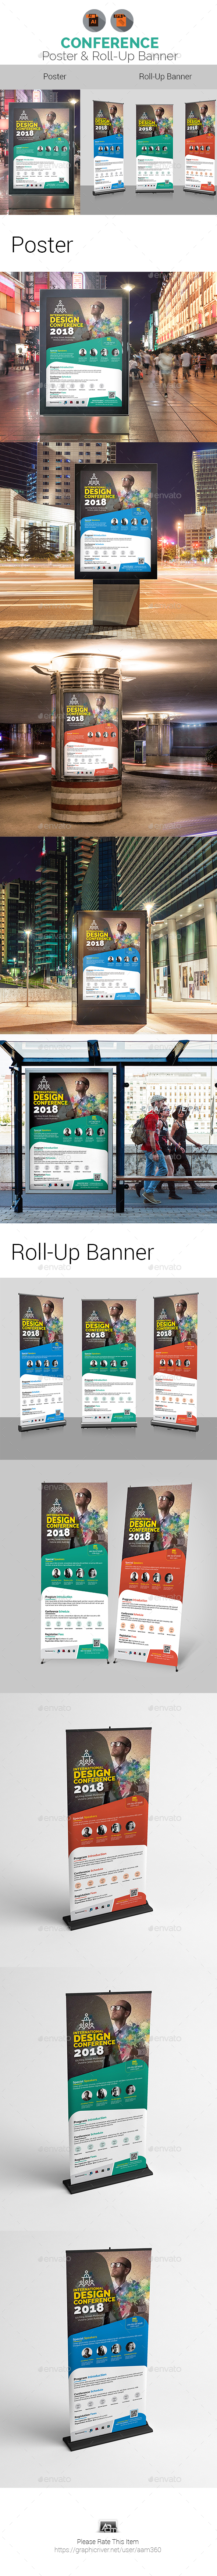 Conference Poster & Roll-Up Bundle Templates - Signage Print Templates